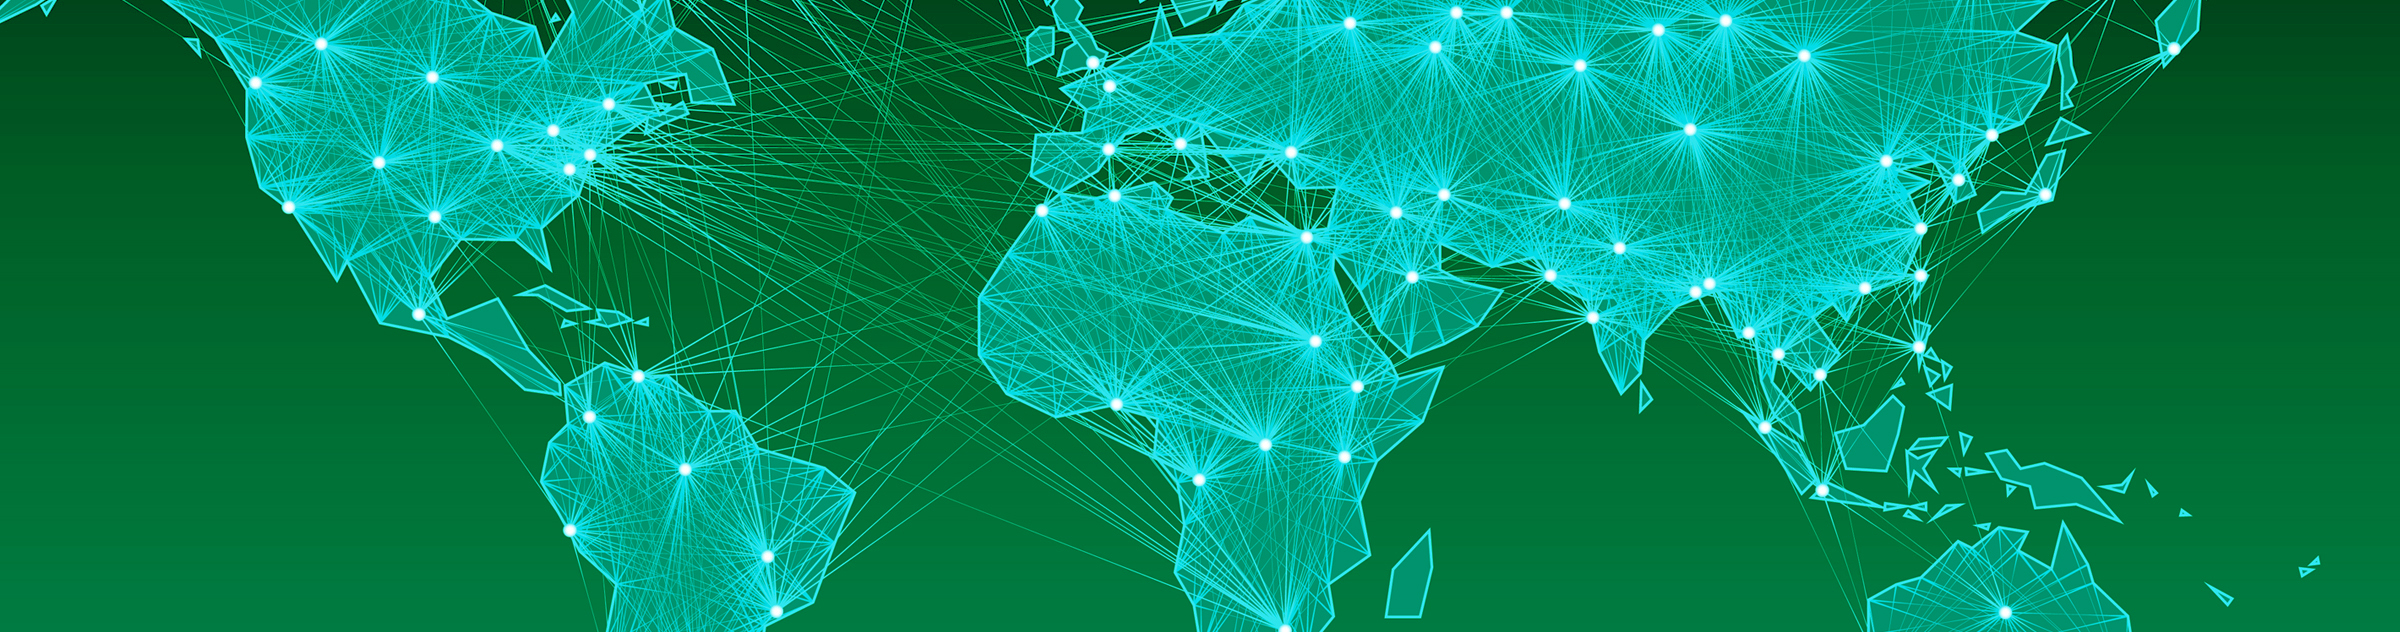 world map header green 1